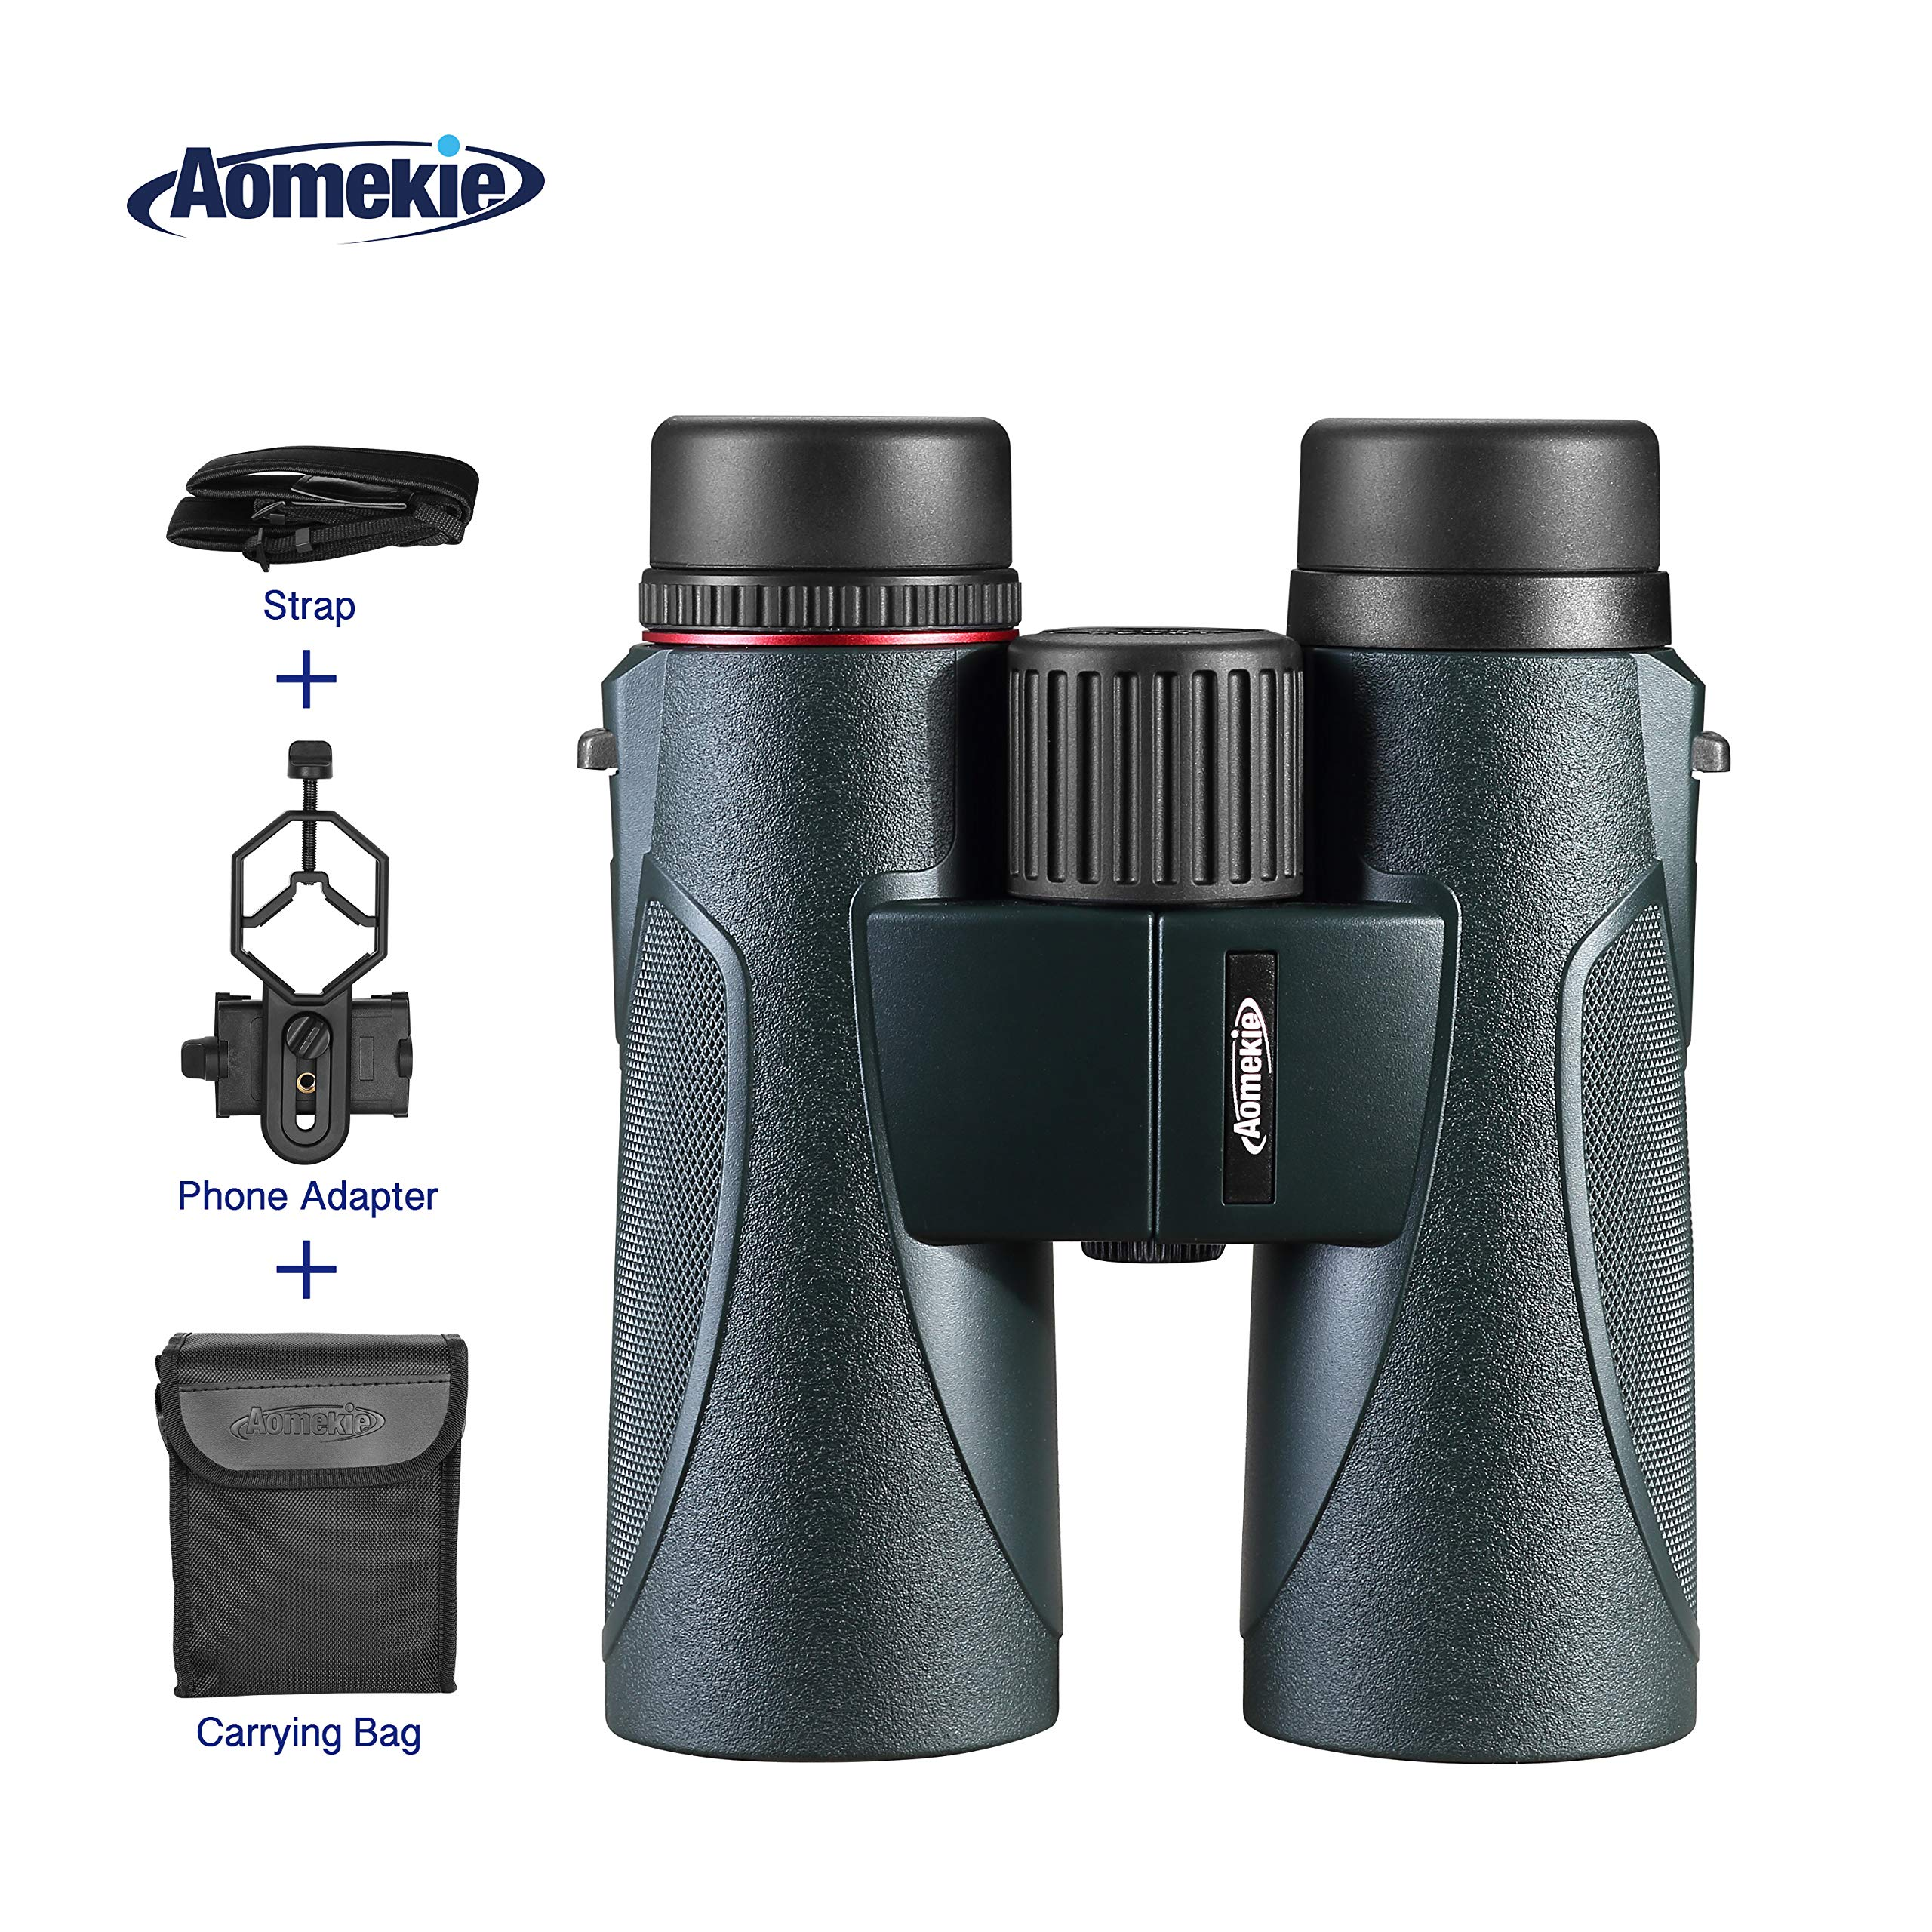 Aomekie Binoculars for Adults 8X42 Compact Waterproof Binocular with Phone Adapter Strap Carrying Bag for Birdwatching Hunting Sports Concerts Theater by AOMEKIE